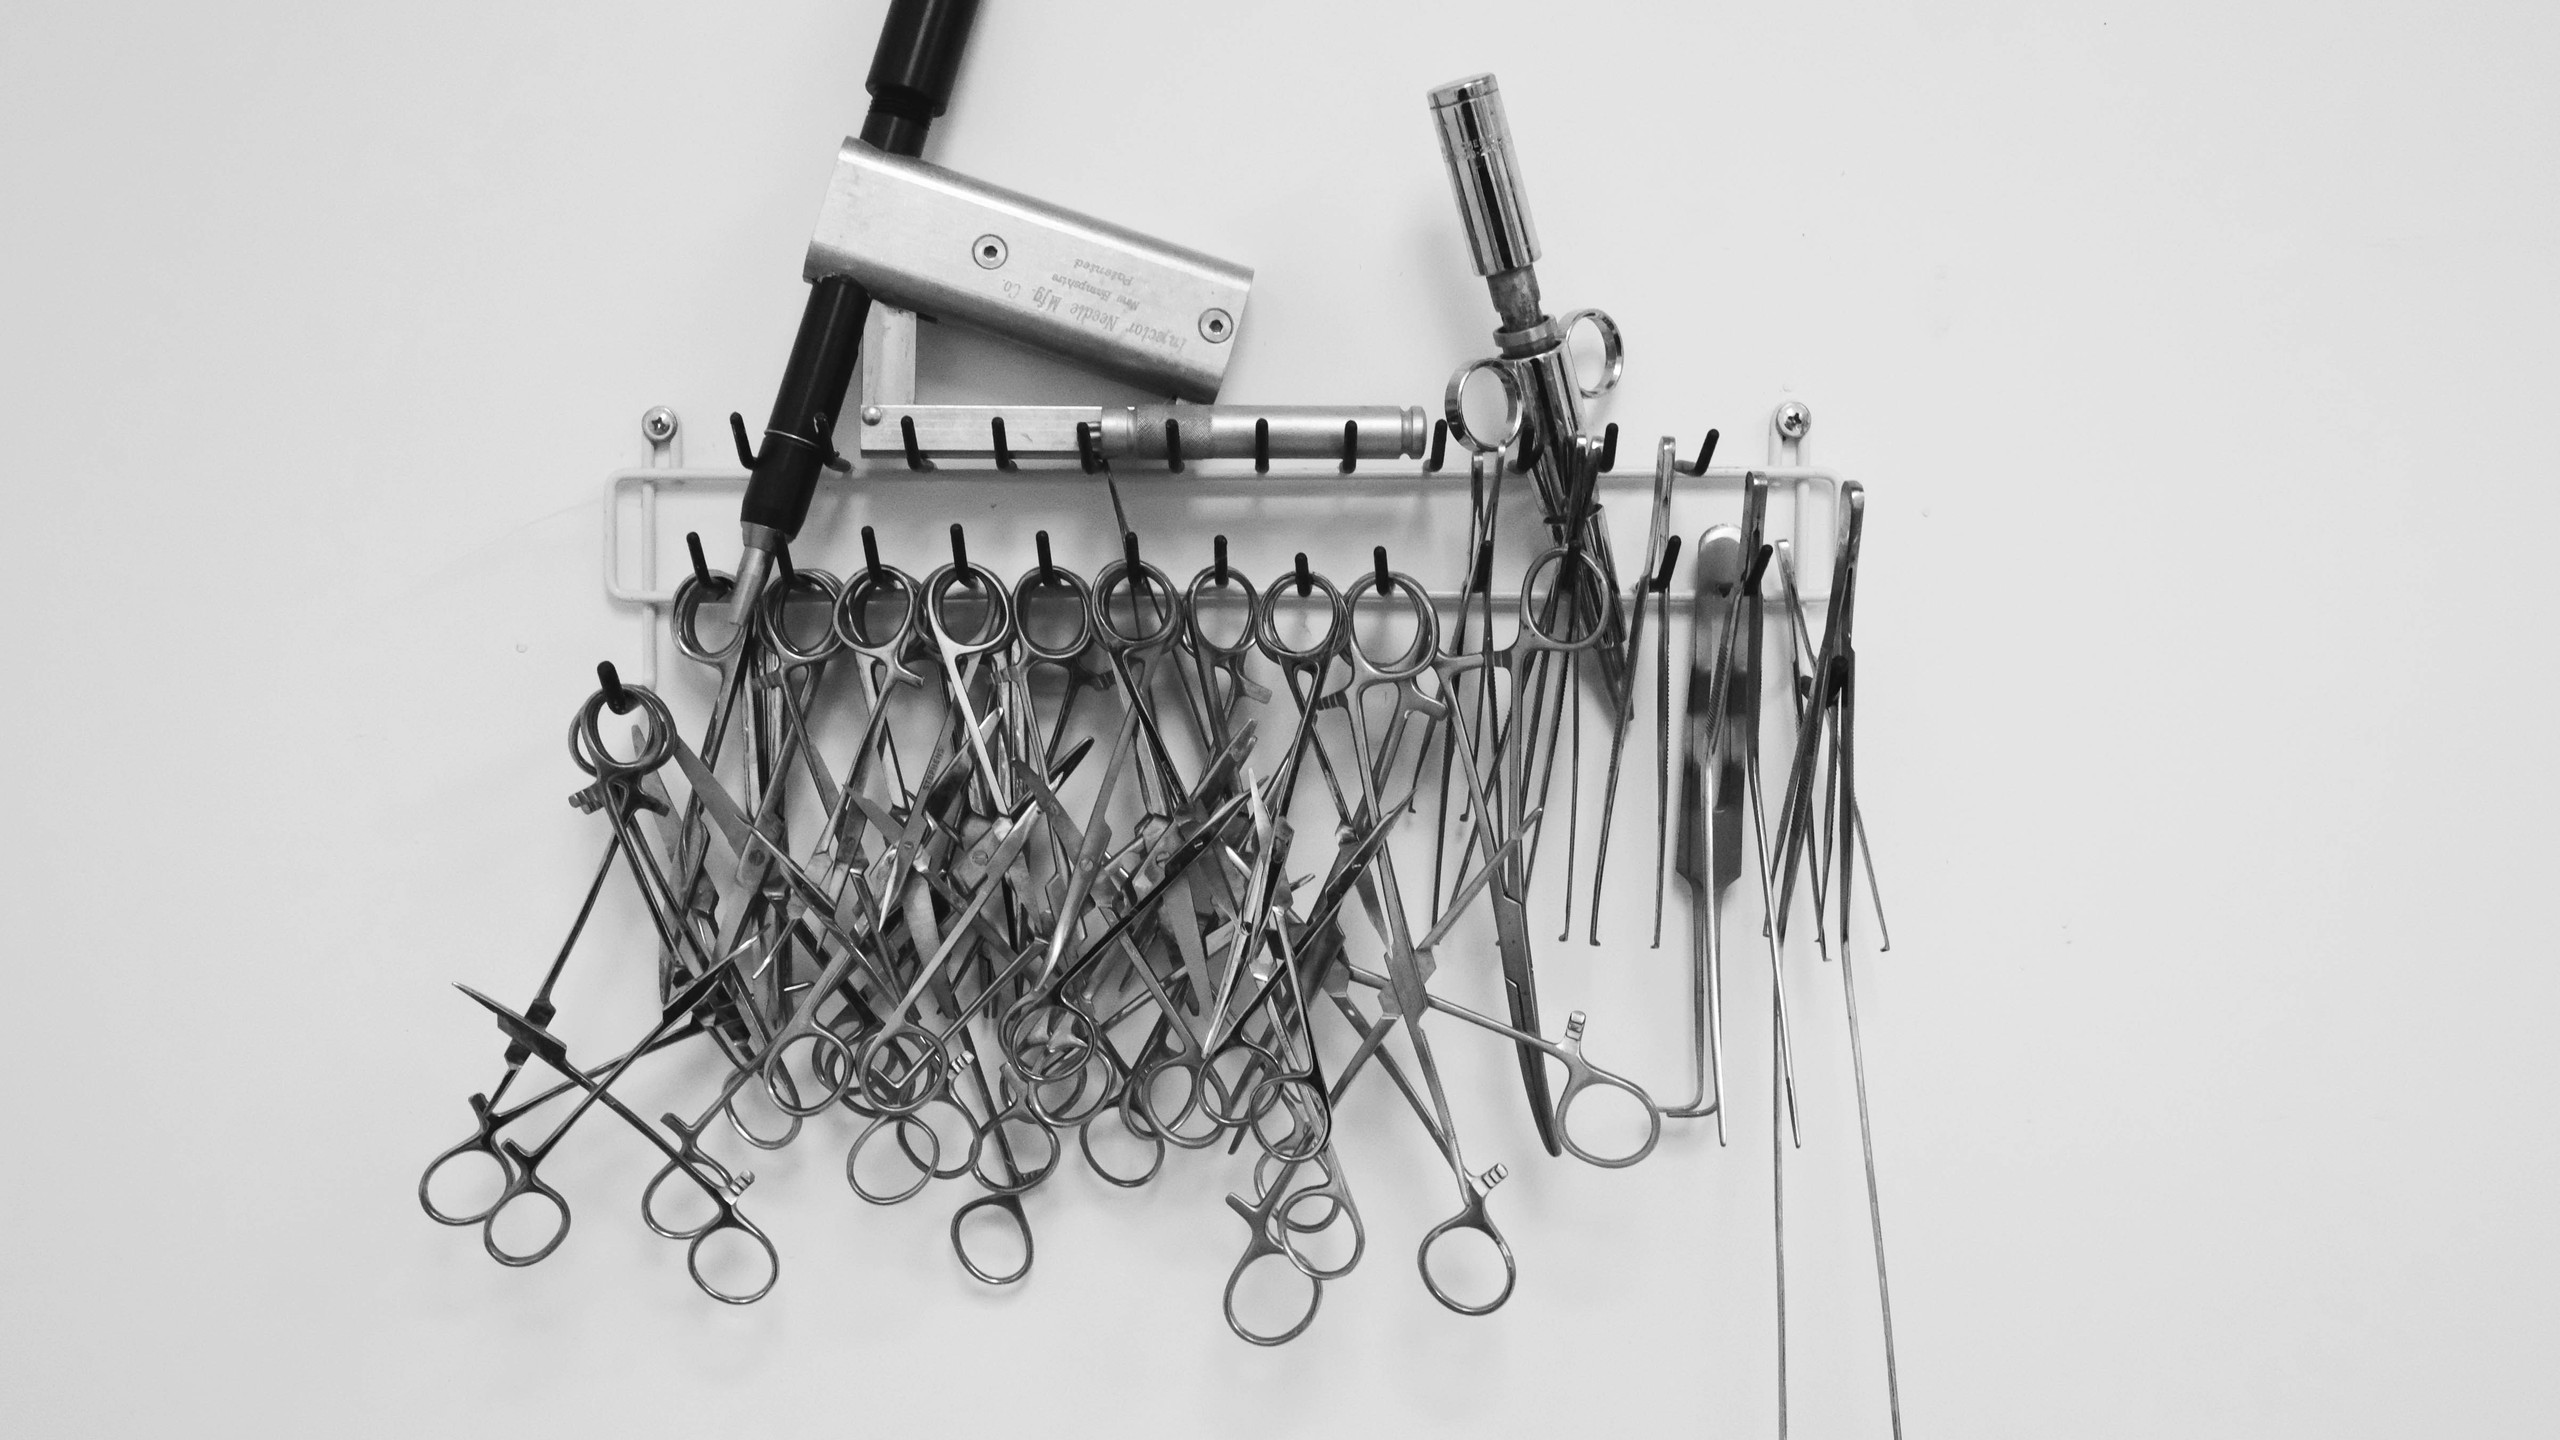 An array of medical scissors and instruments hang on the wall in the embalming room.